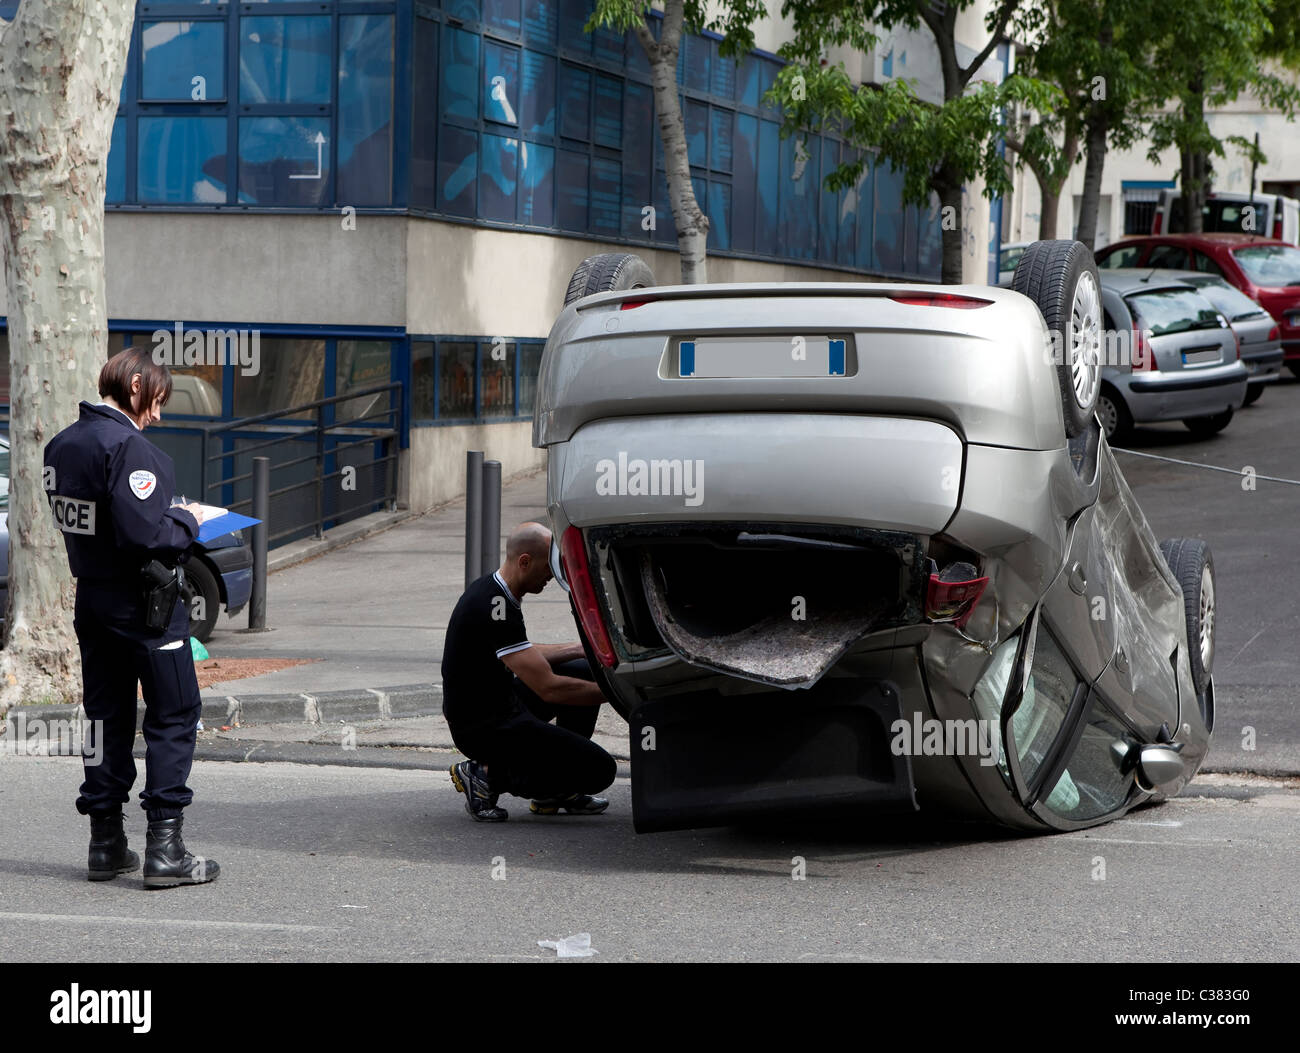 Traffic accident crossing Cours Gouffé,rue de l'Abbé Féraud in Marseille on April 25th at 10:30 am Stock Photo